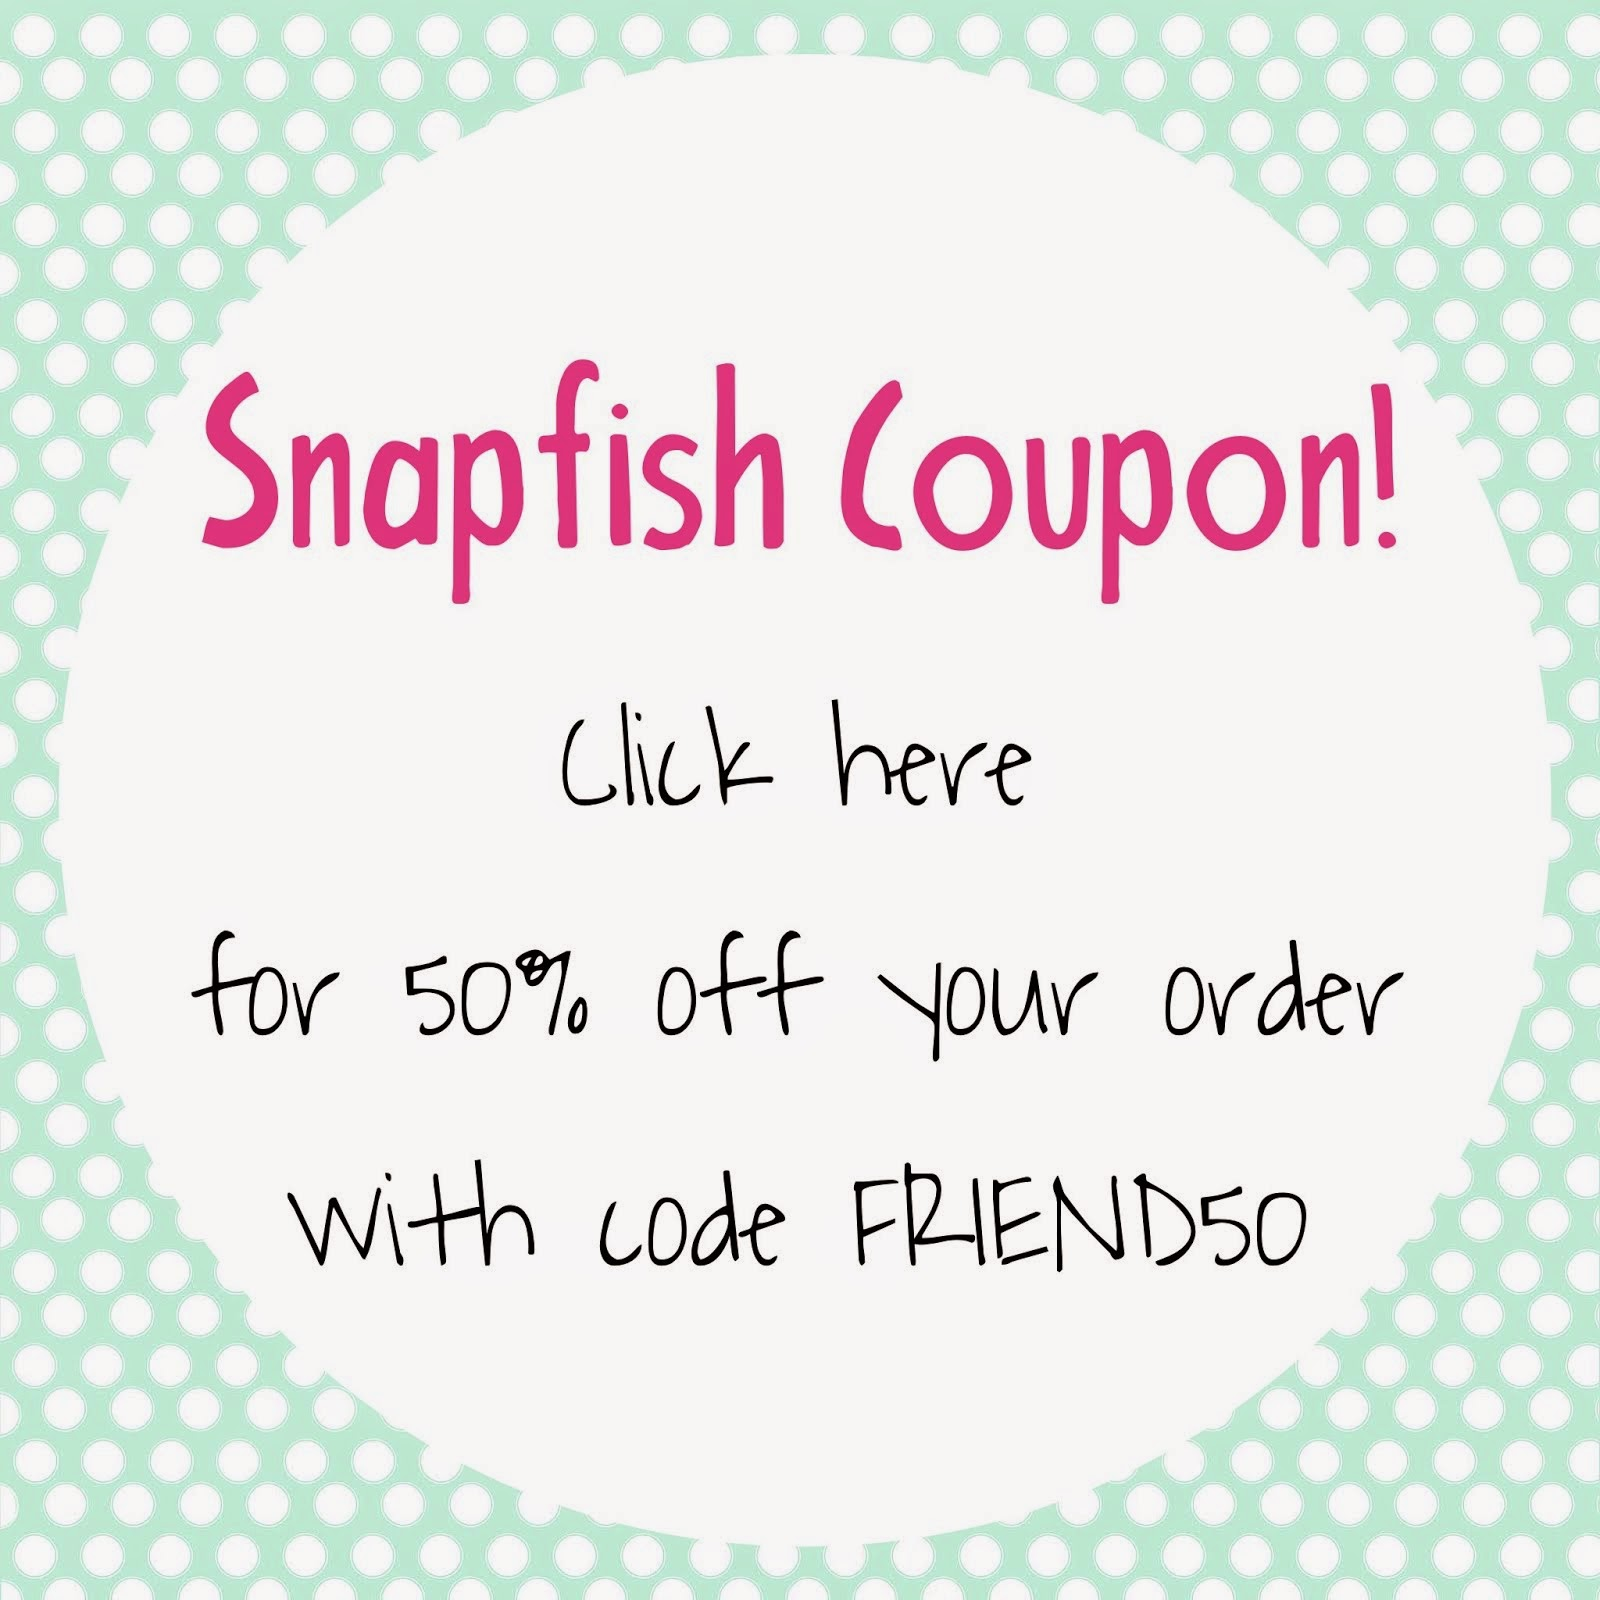 New Customers: Click the box and use code FRIEND50